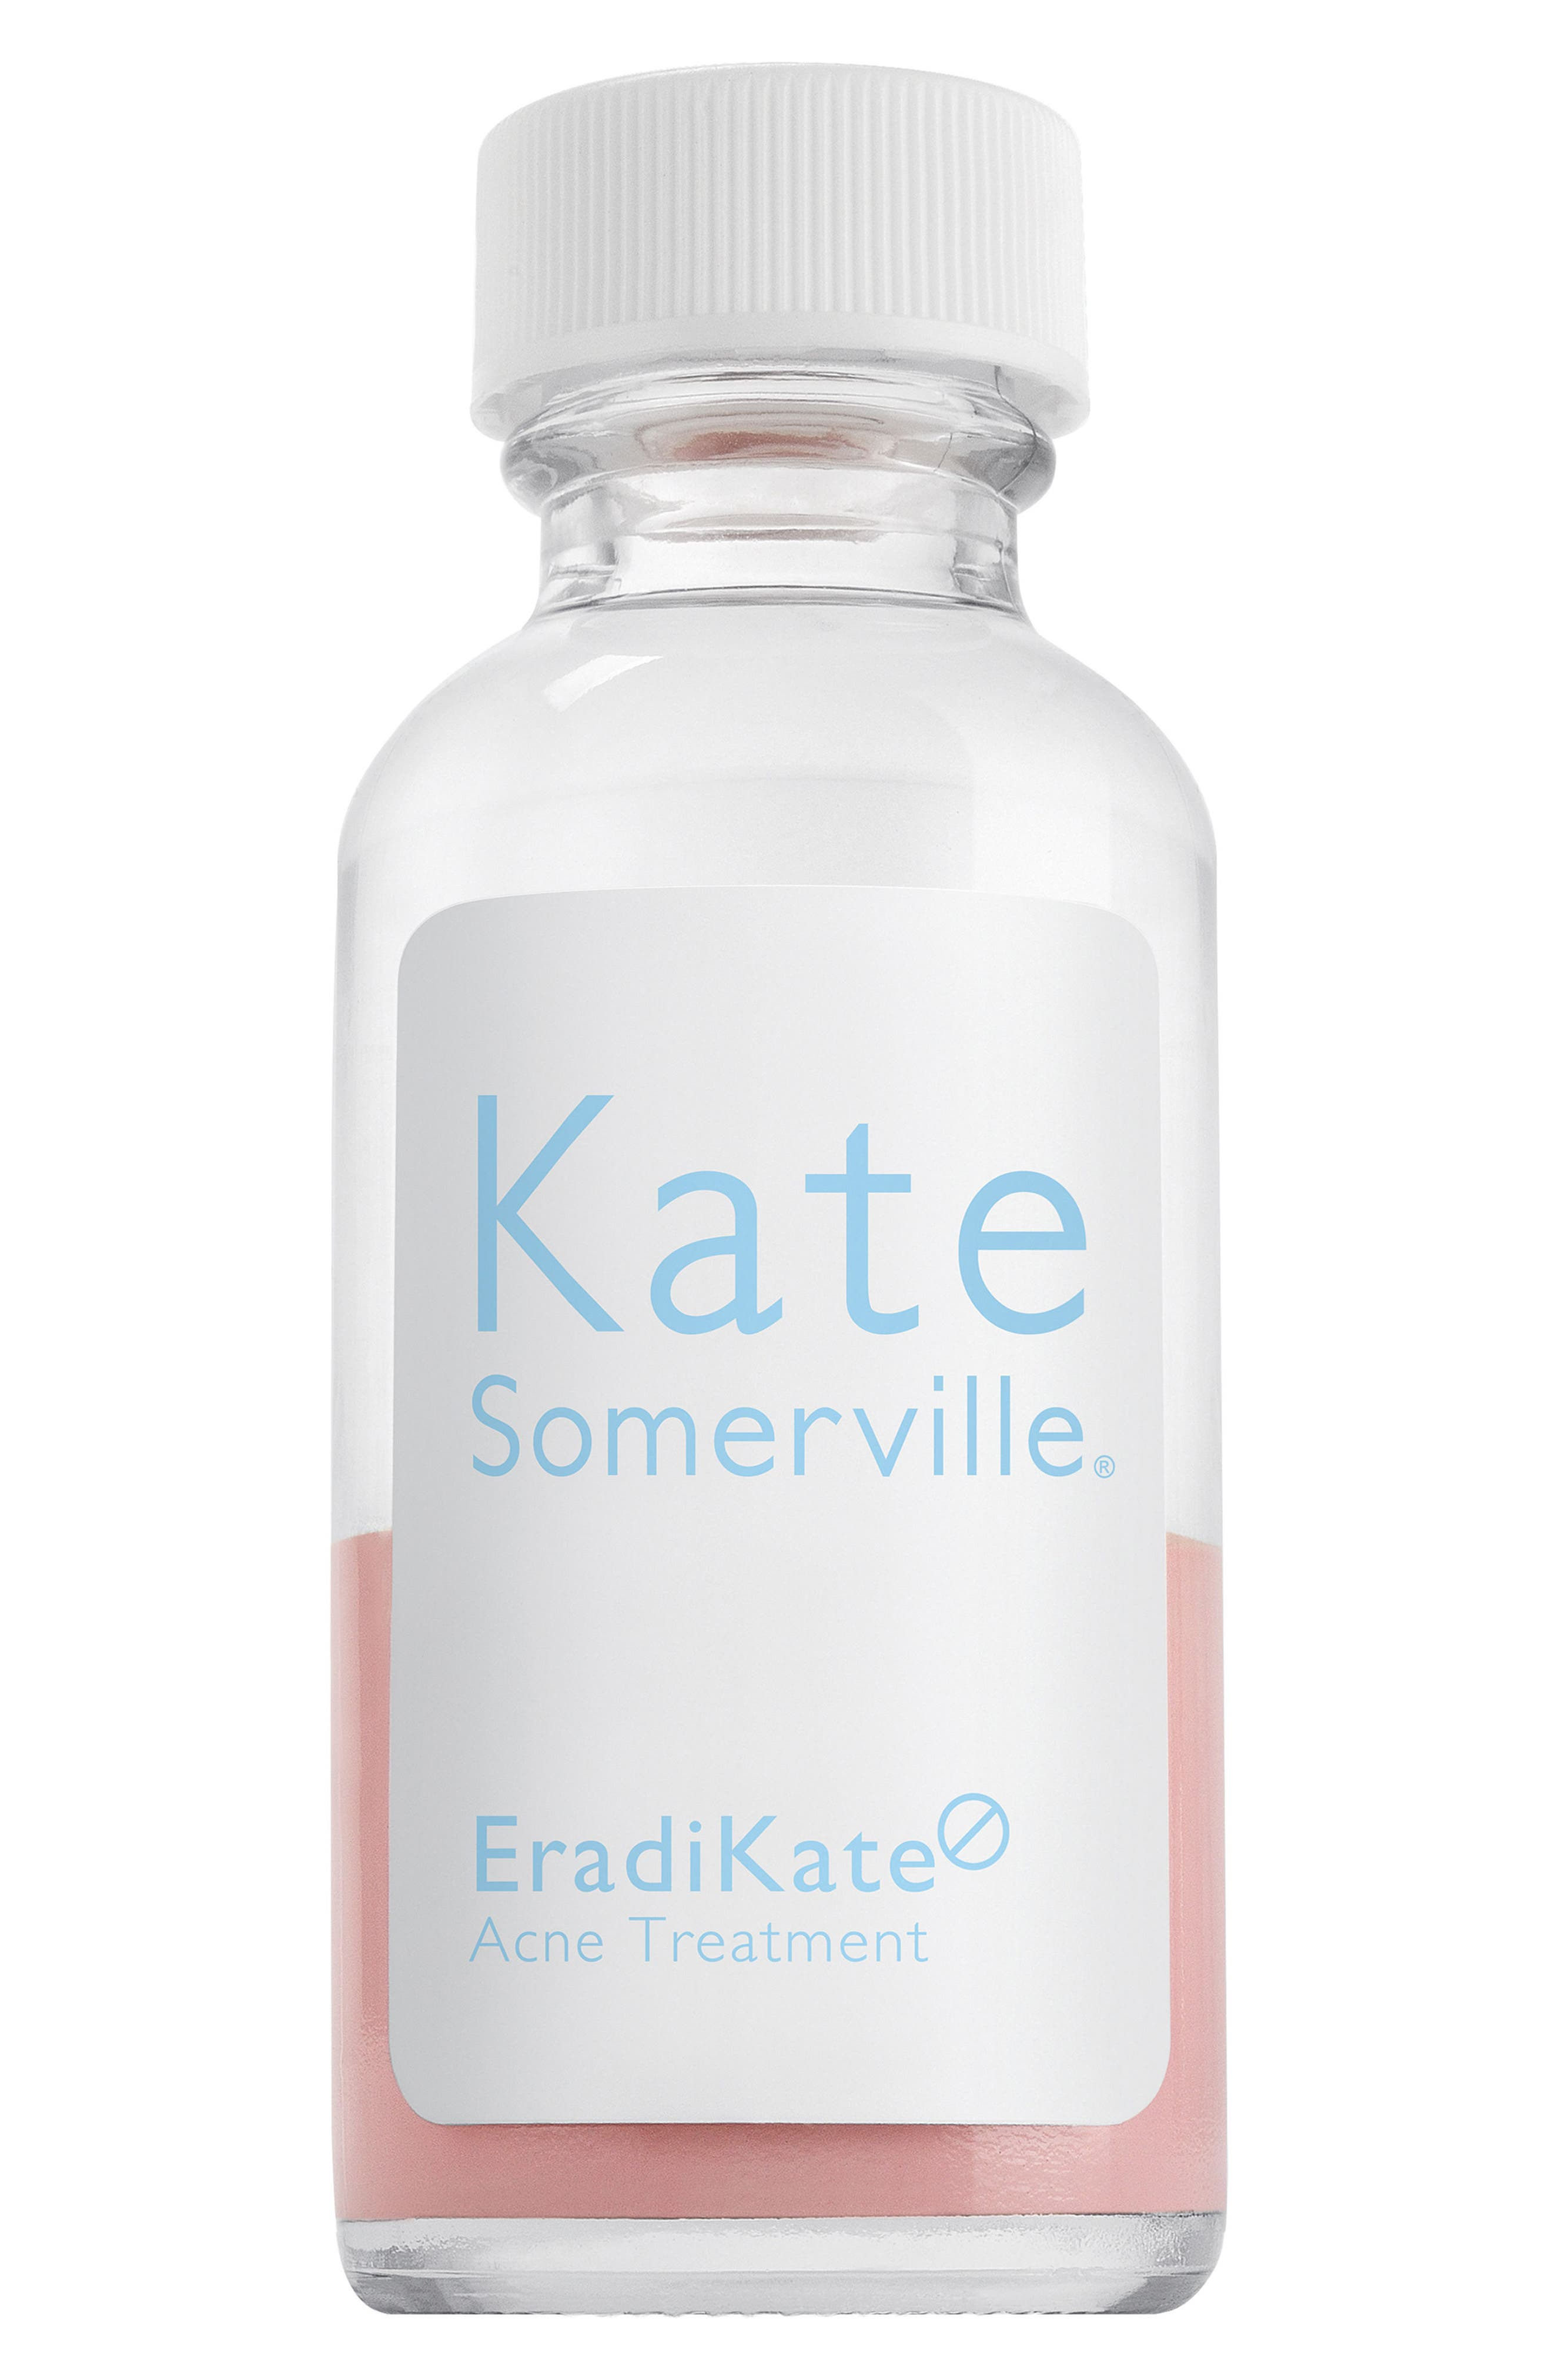 Kate Somerville® 'EradiKate' Acne Treatment